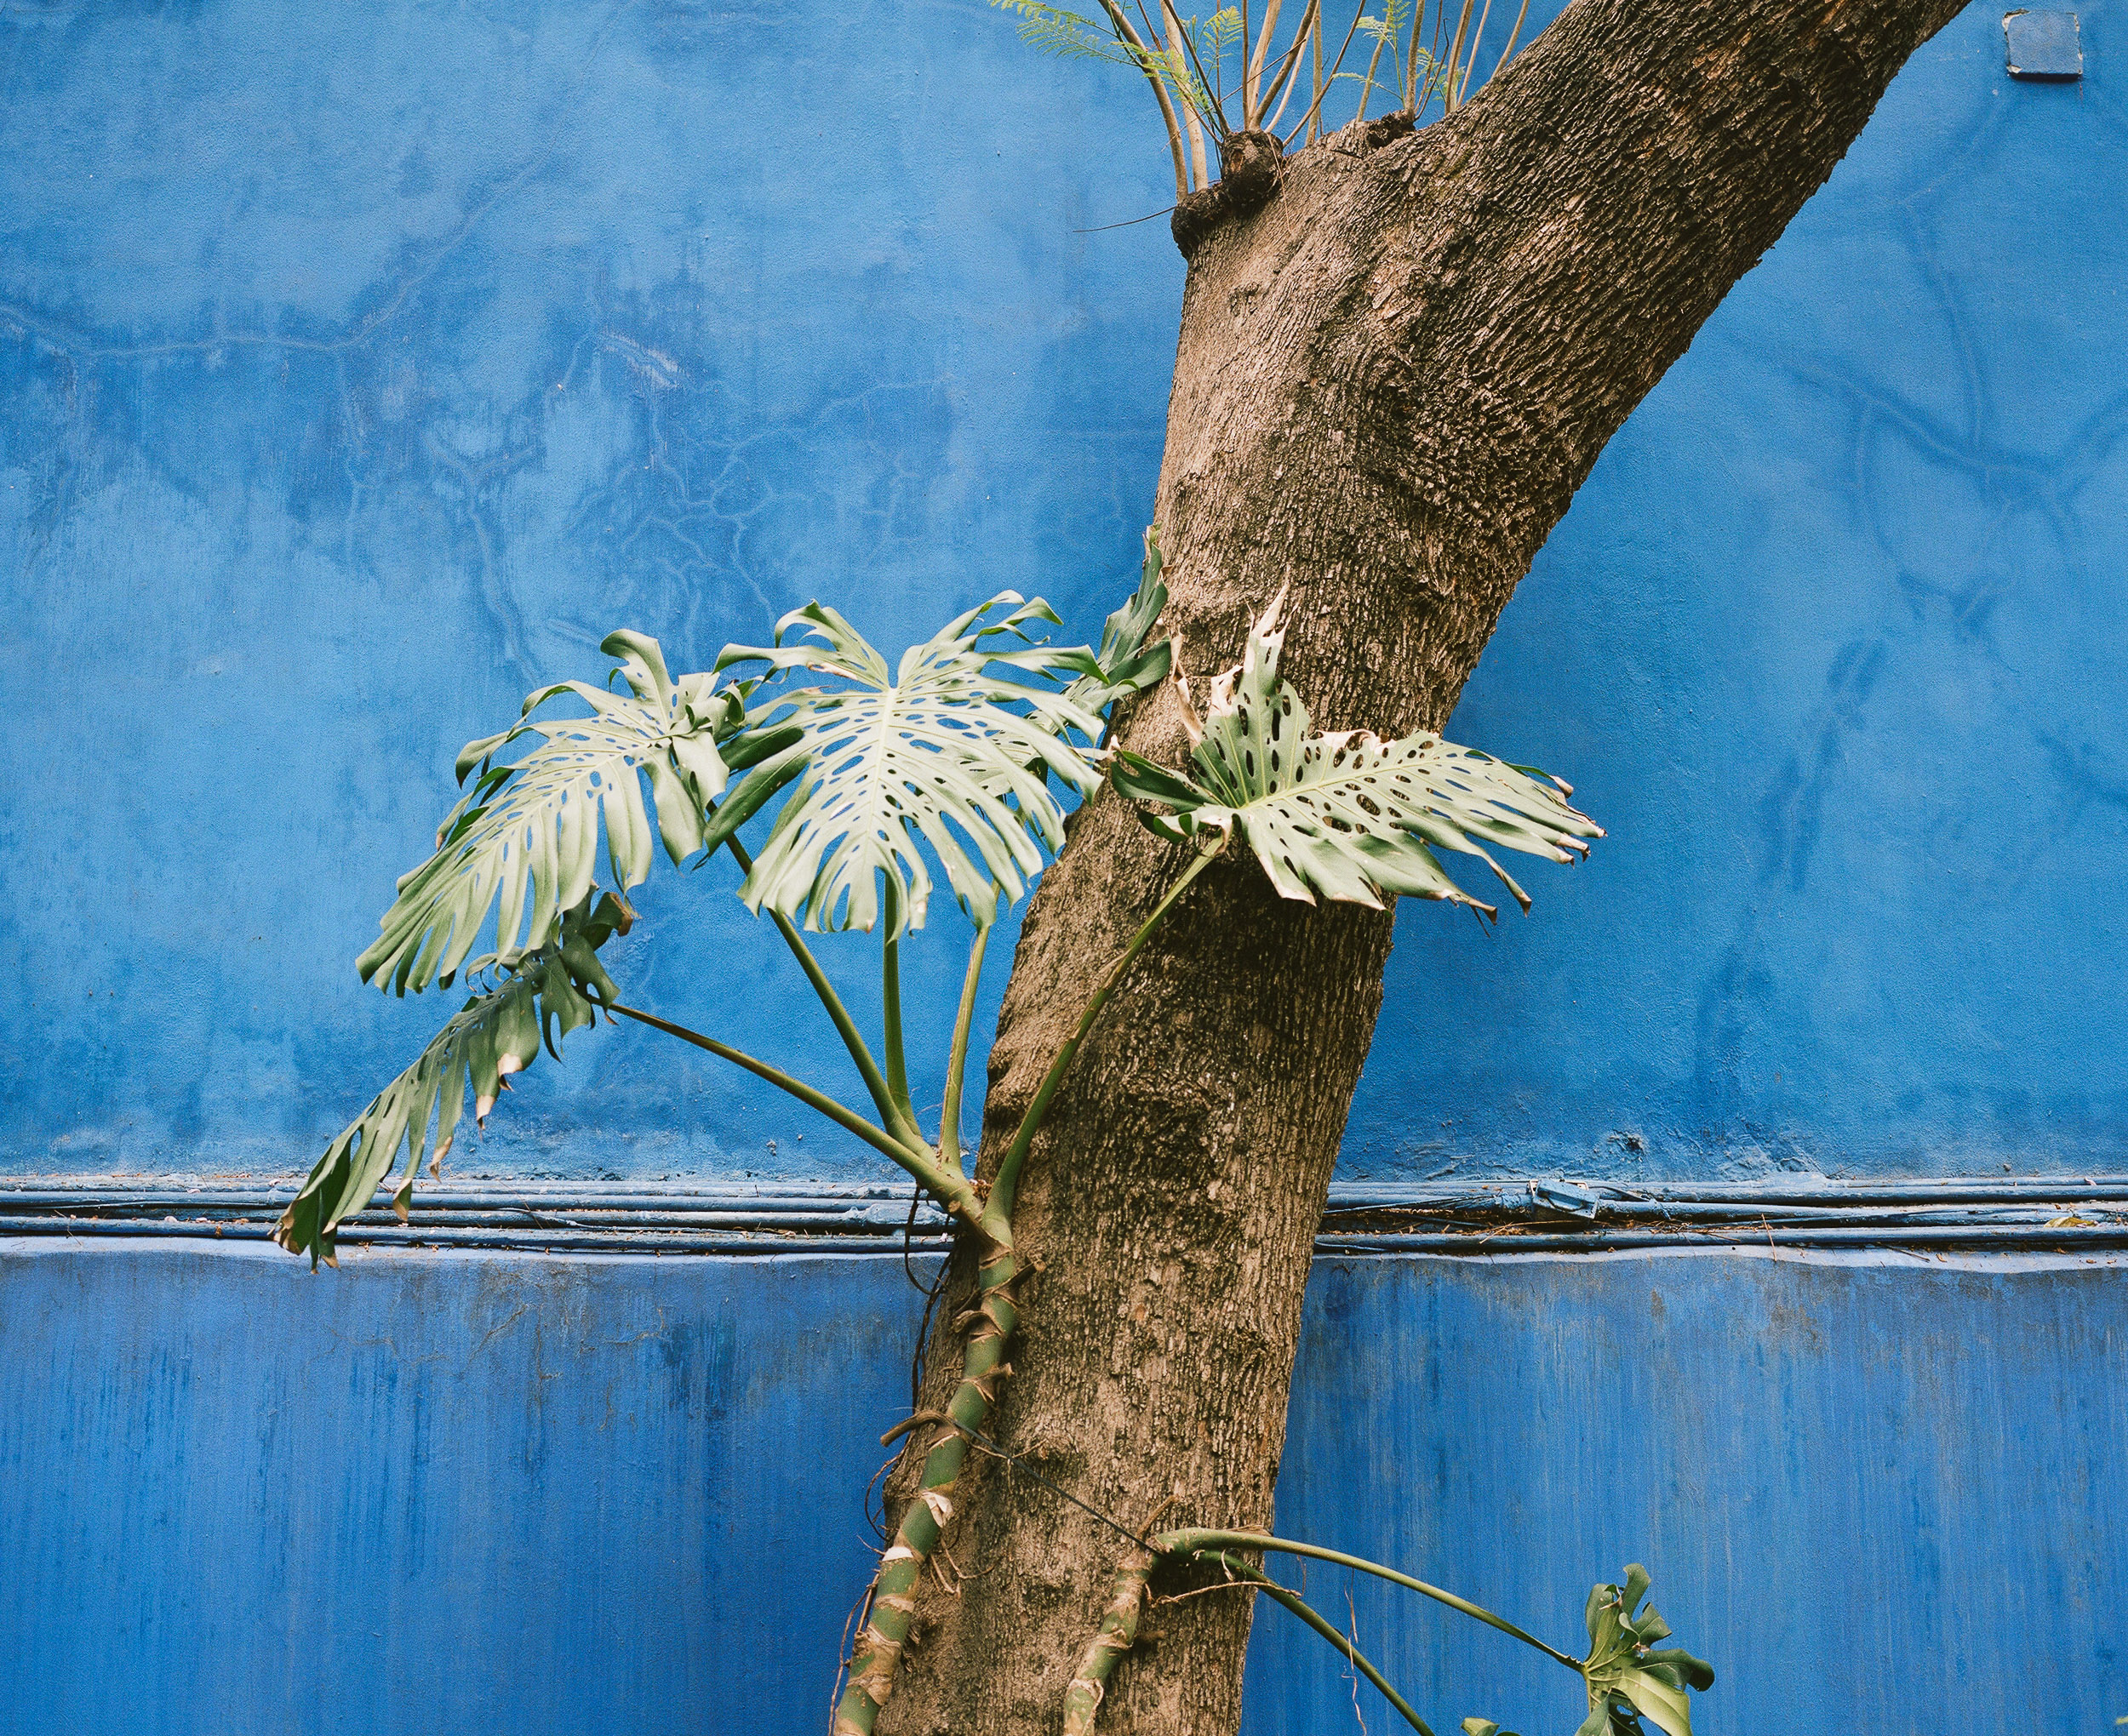 plants growing on a tree at the Casa Azul, Mexico City